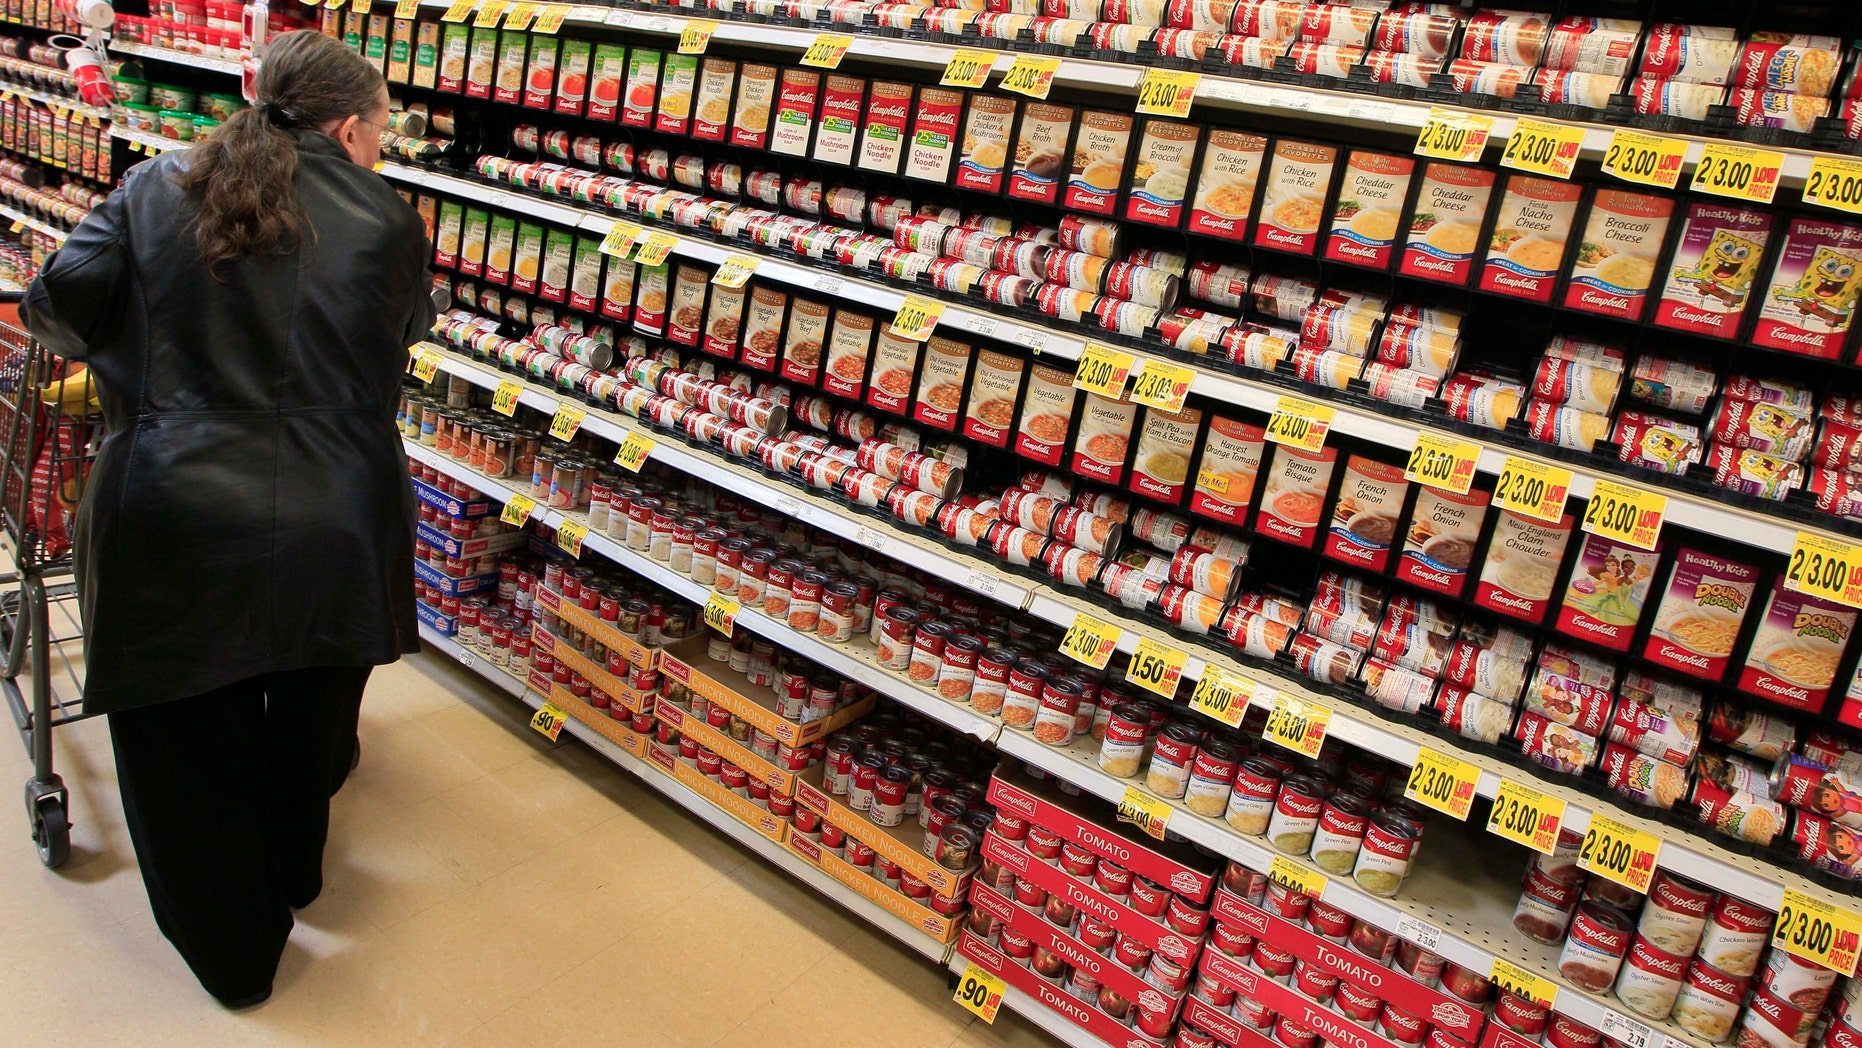 A shopper walks down the canned soup aisle at a grocery store in Cincinnati. (AP Photo/Al Behrman, File)